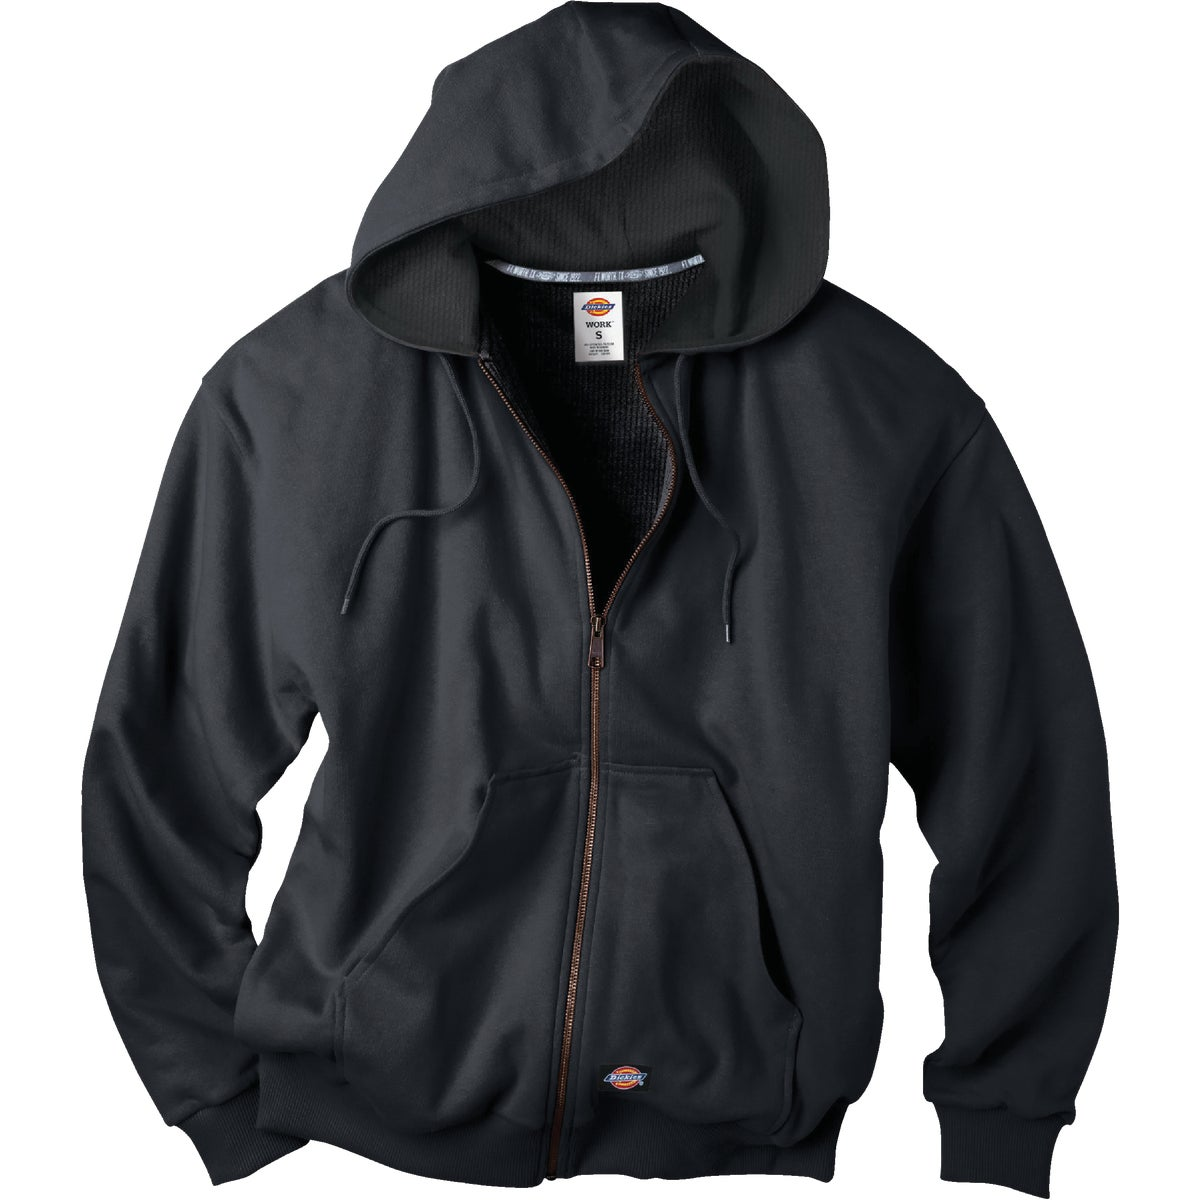 Williamson Dickie Mfg Co MED BLK HOOD FLC JACKET TW6303BK-M